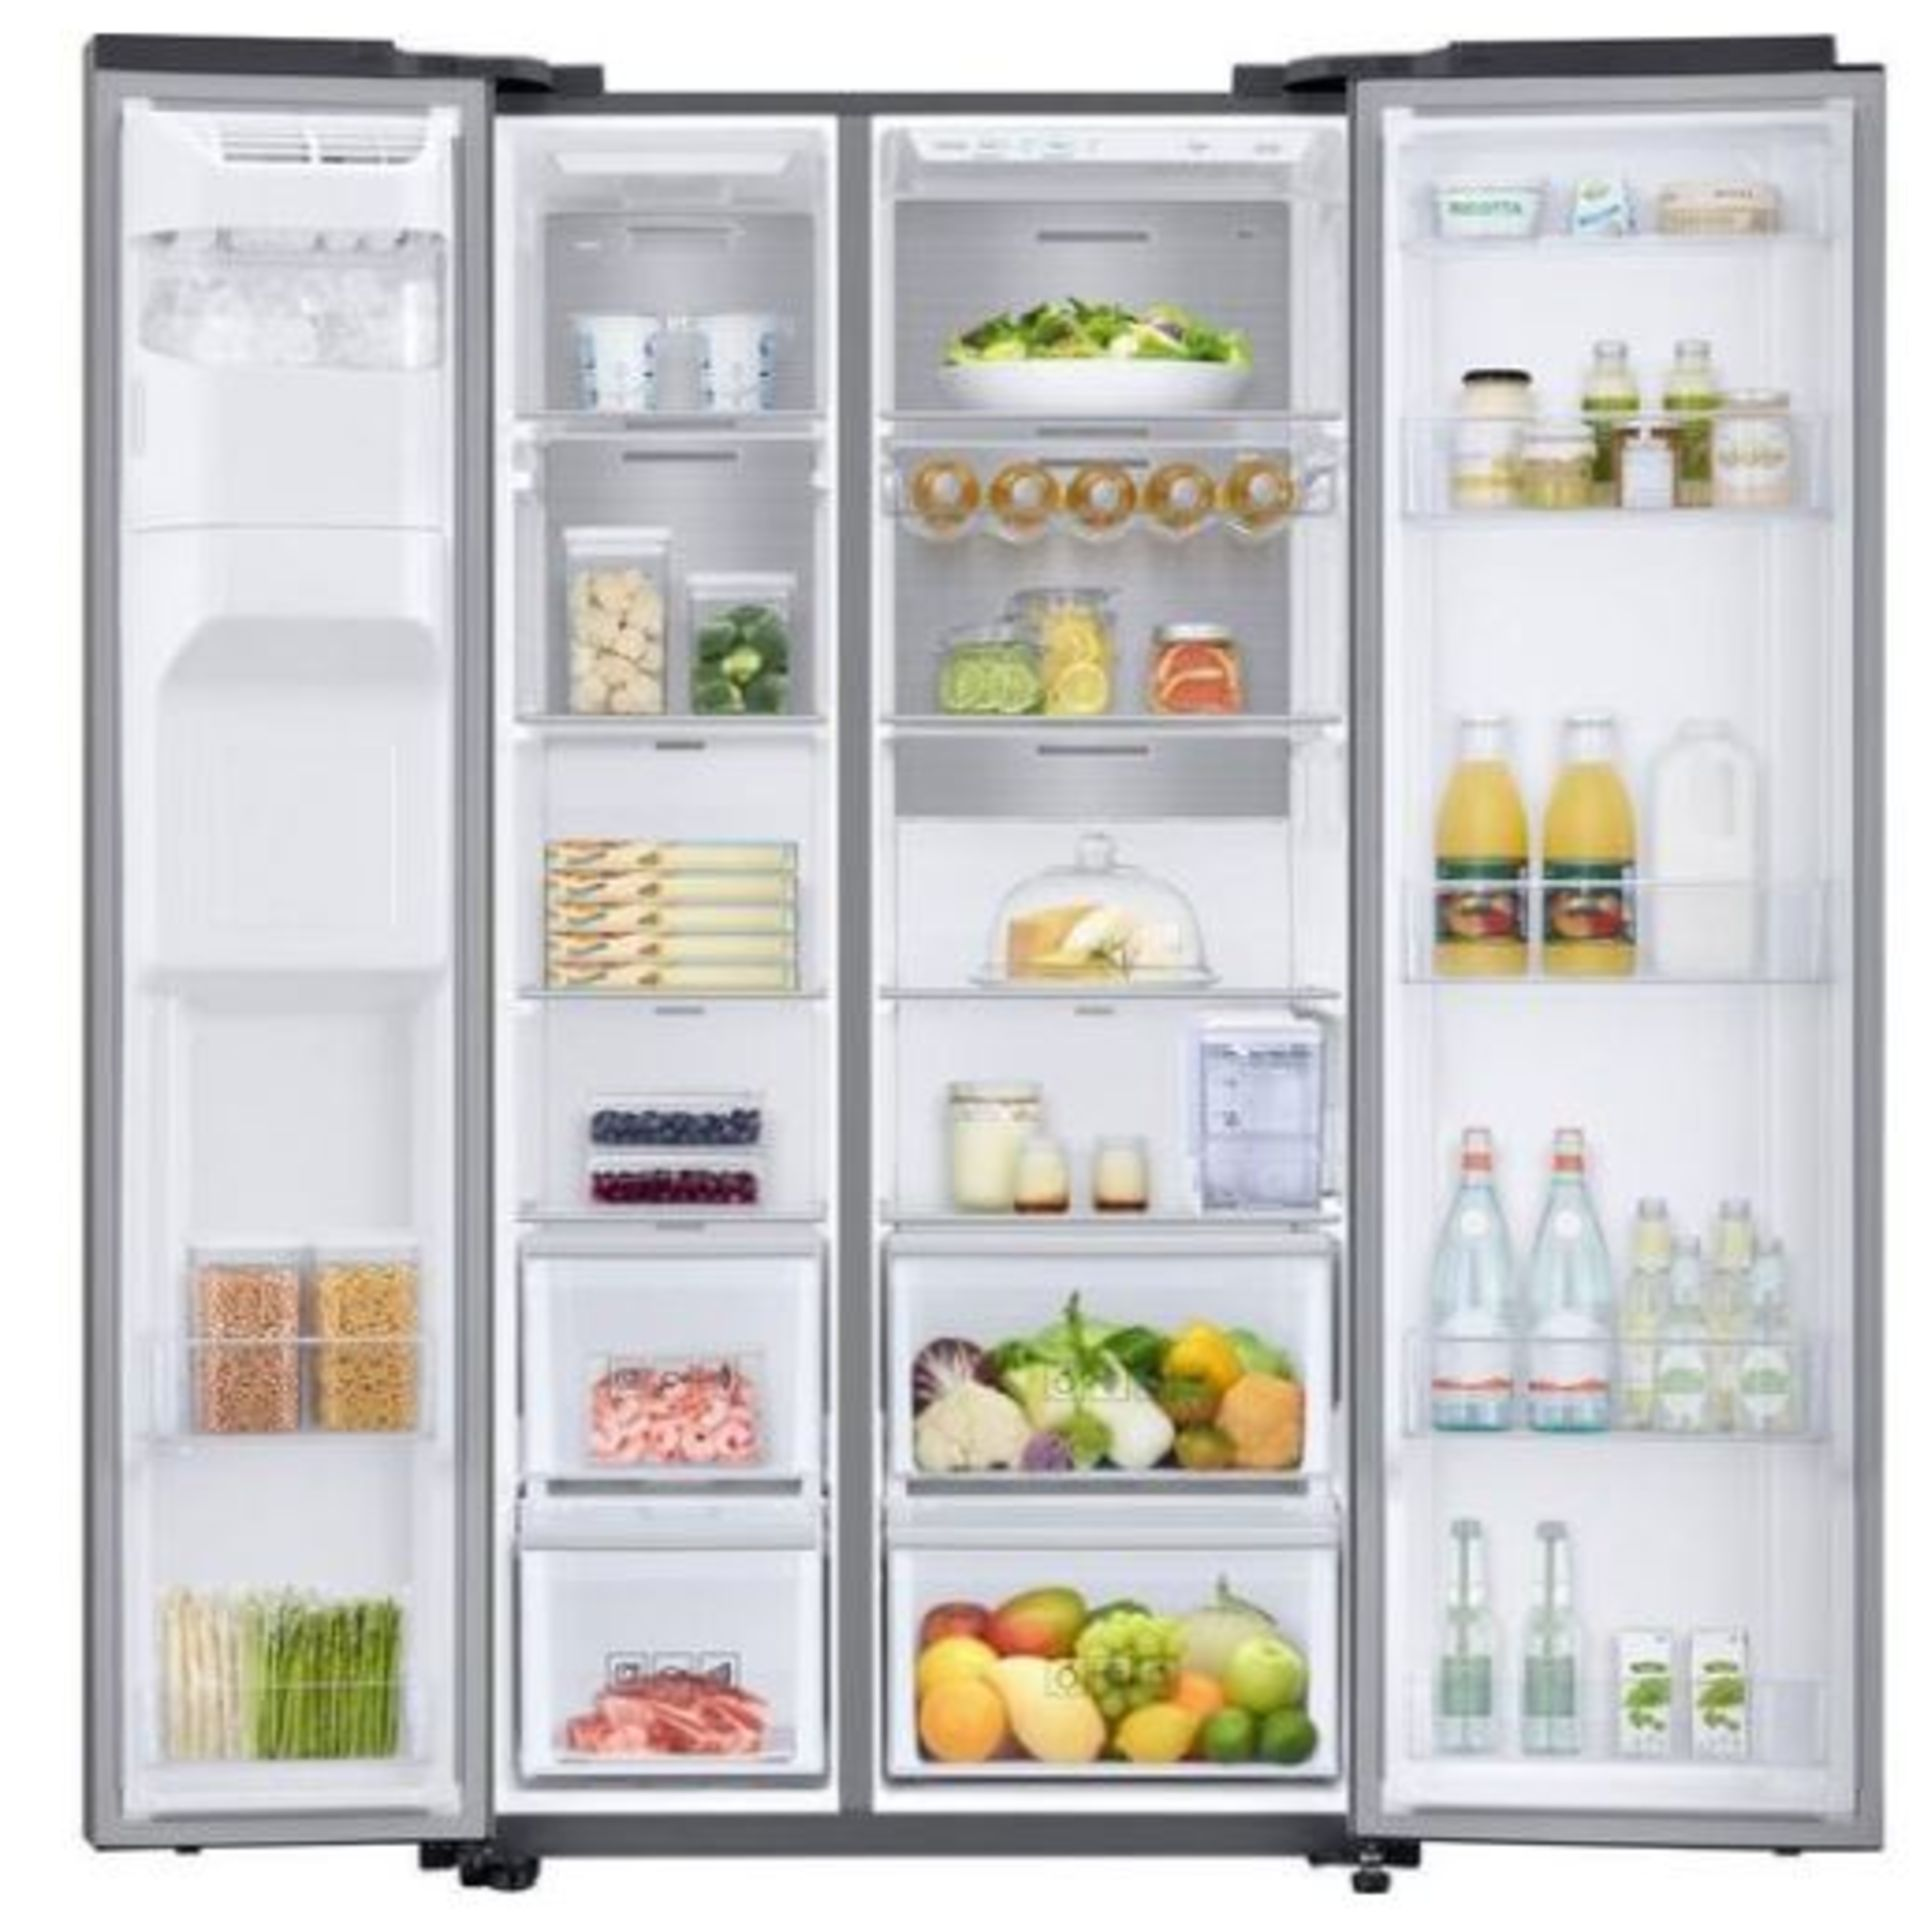 Pallet of 1 Samsung Water & Ice Fridge freezer. Latest selling price £1,799.99 - Image 2 of 10